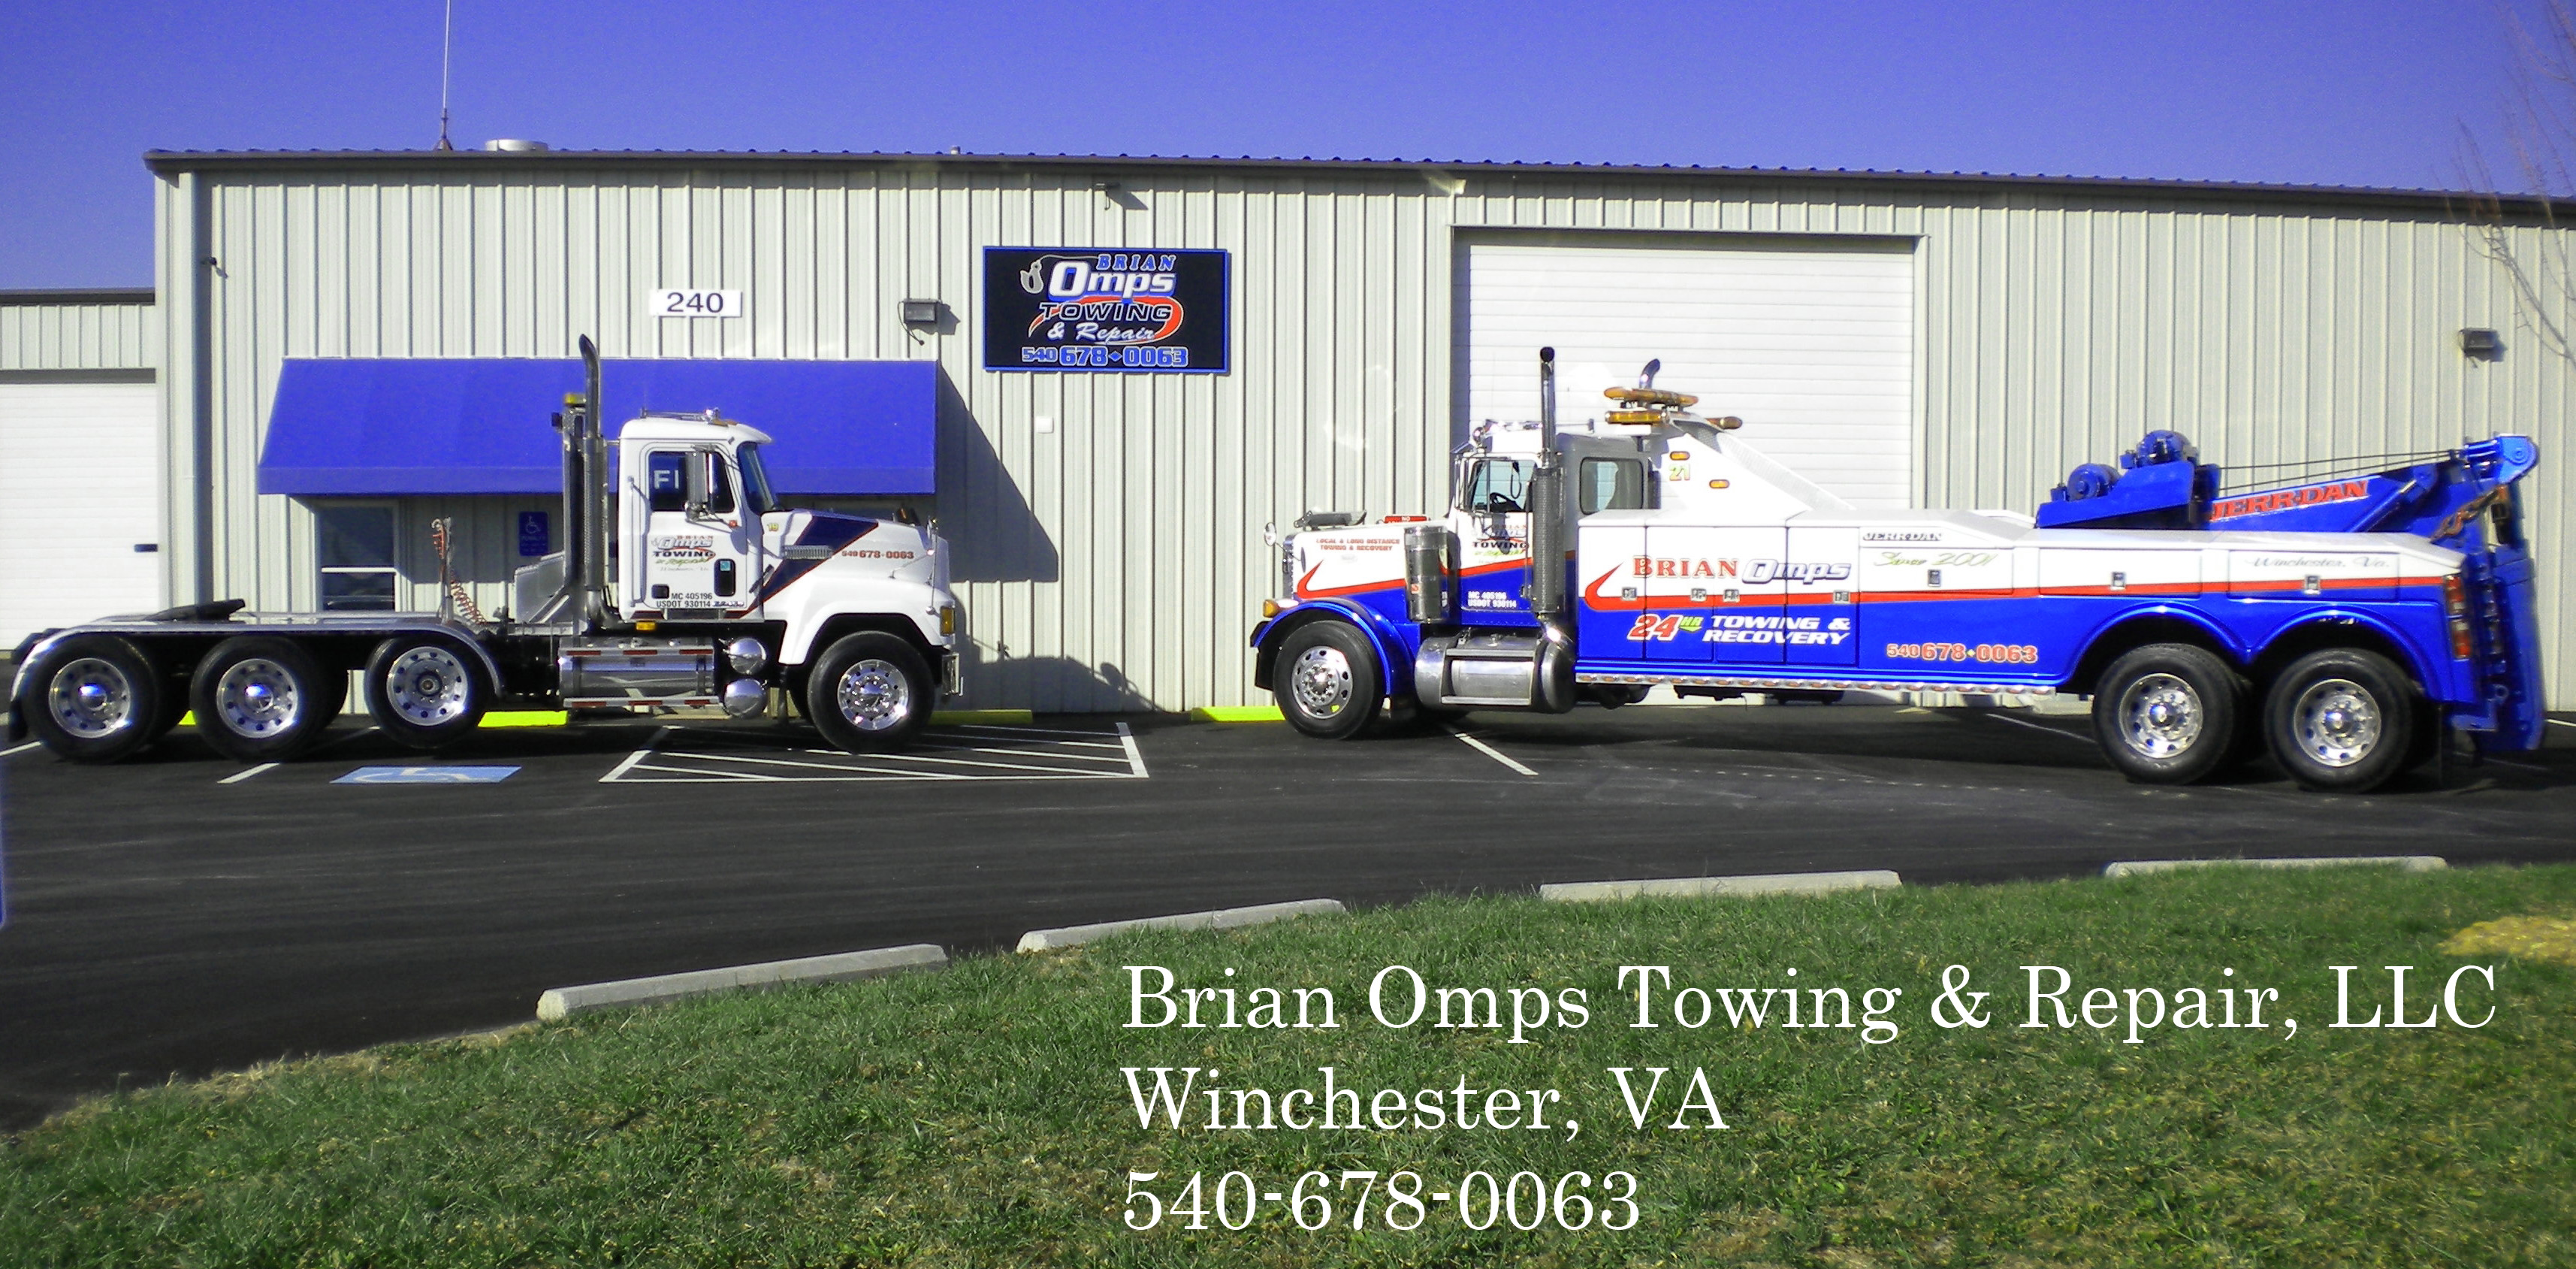 Brian.Omps.Towing.jpg